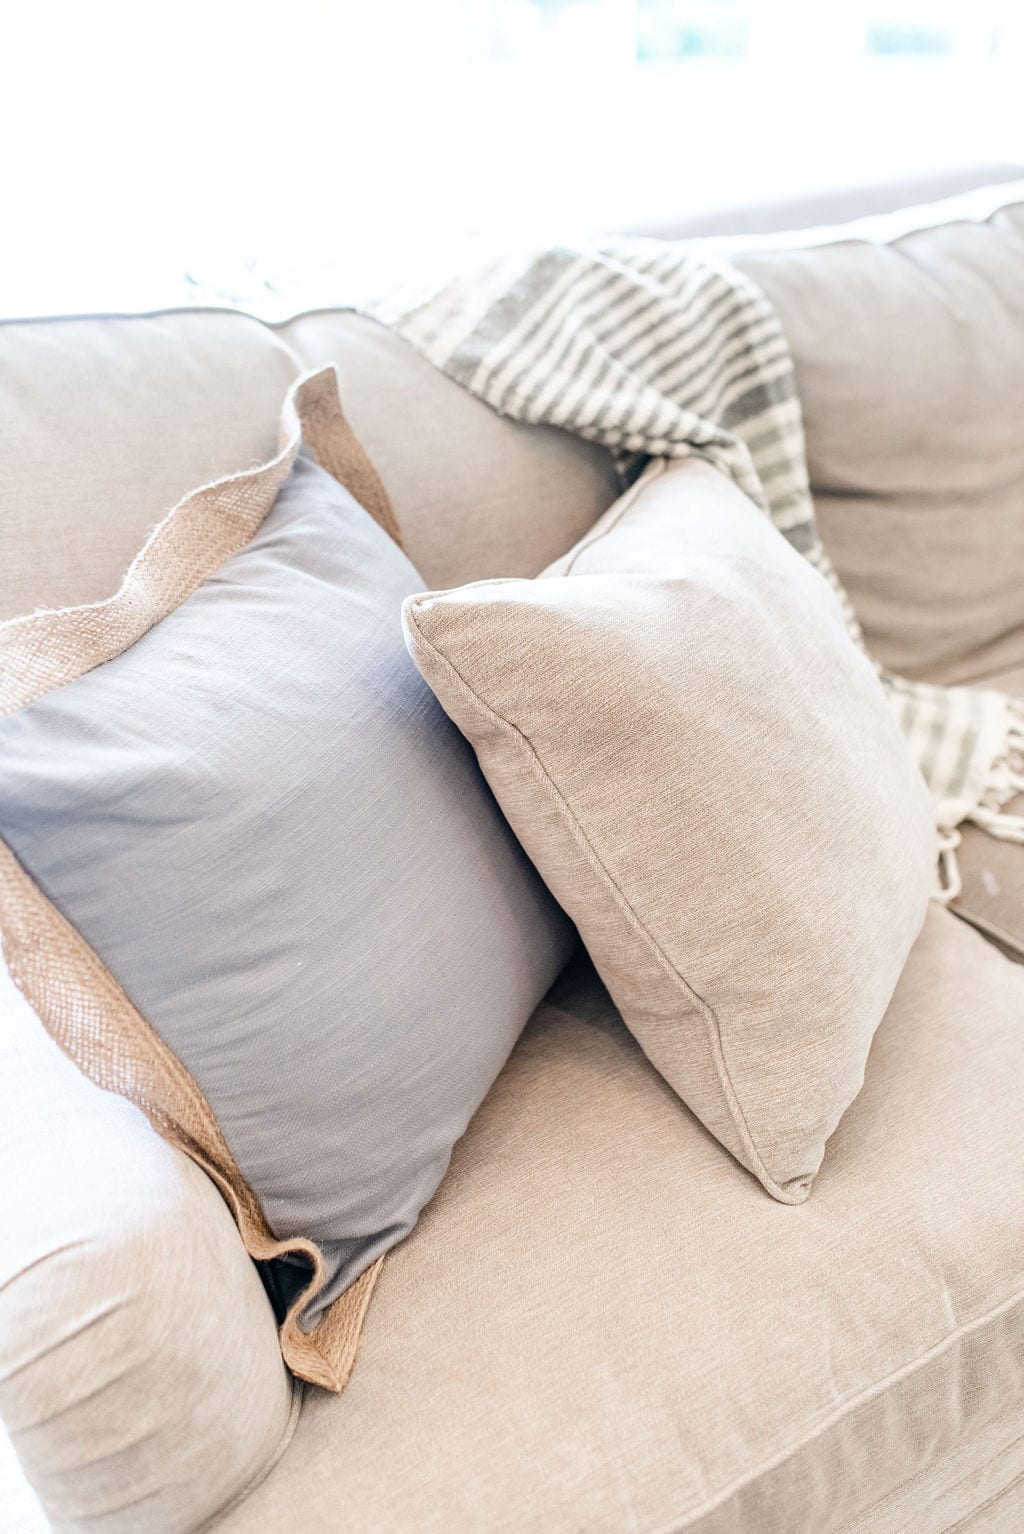 Burlap Throw Pillows in light blue and taupe on taupe gray chenille couch.